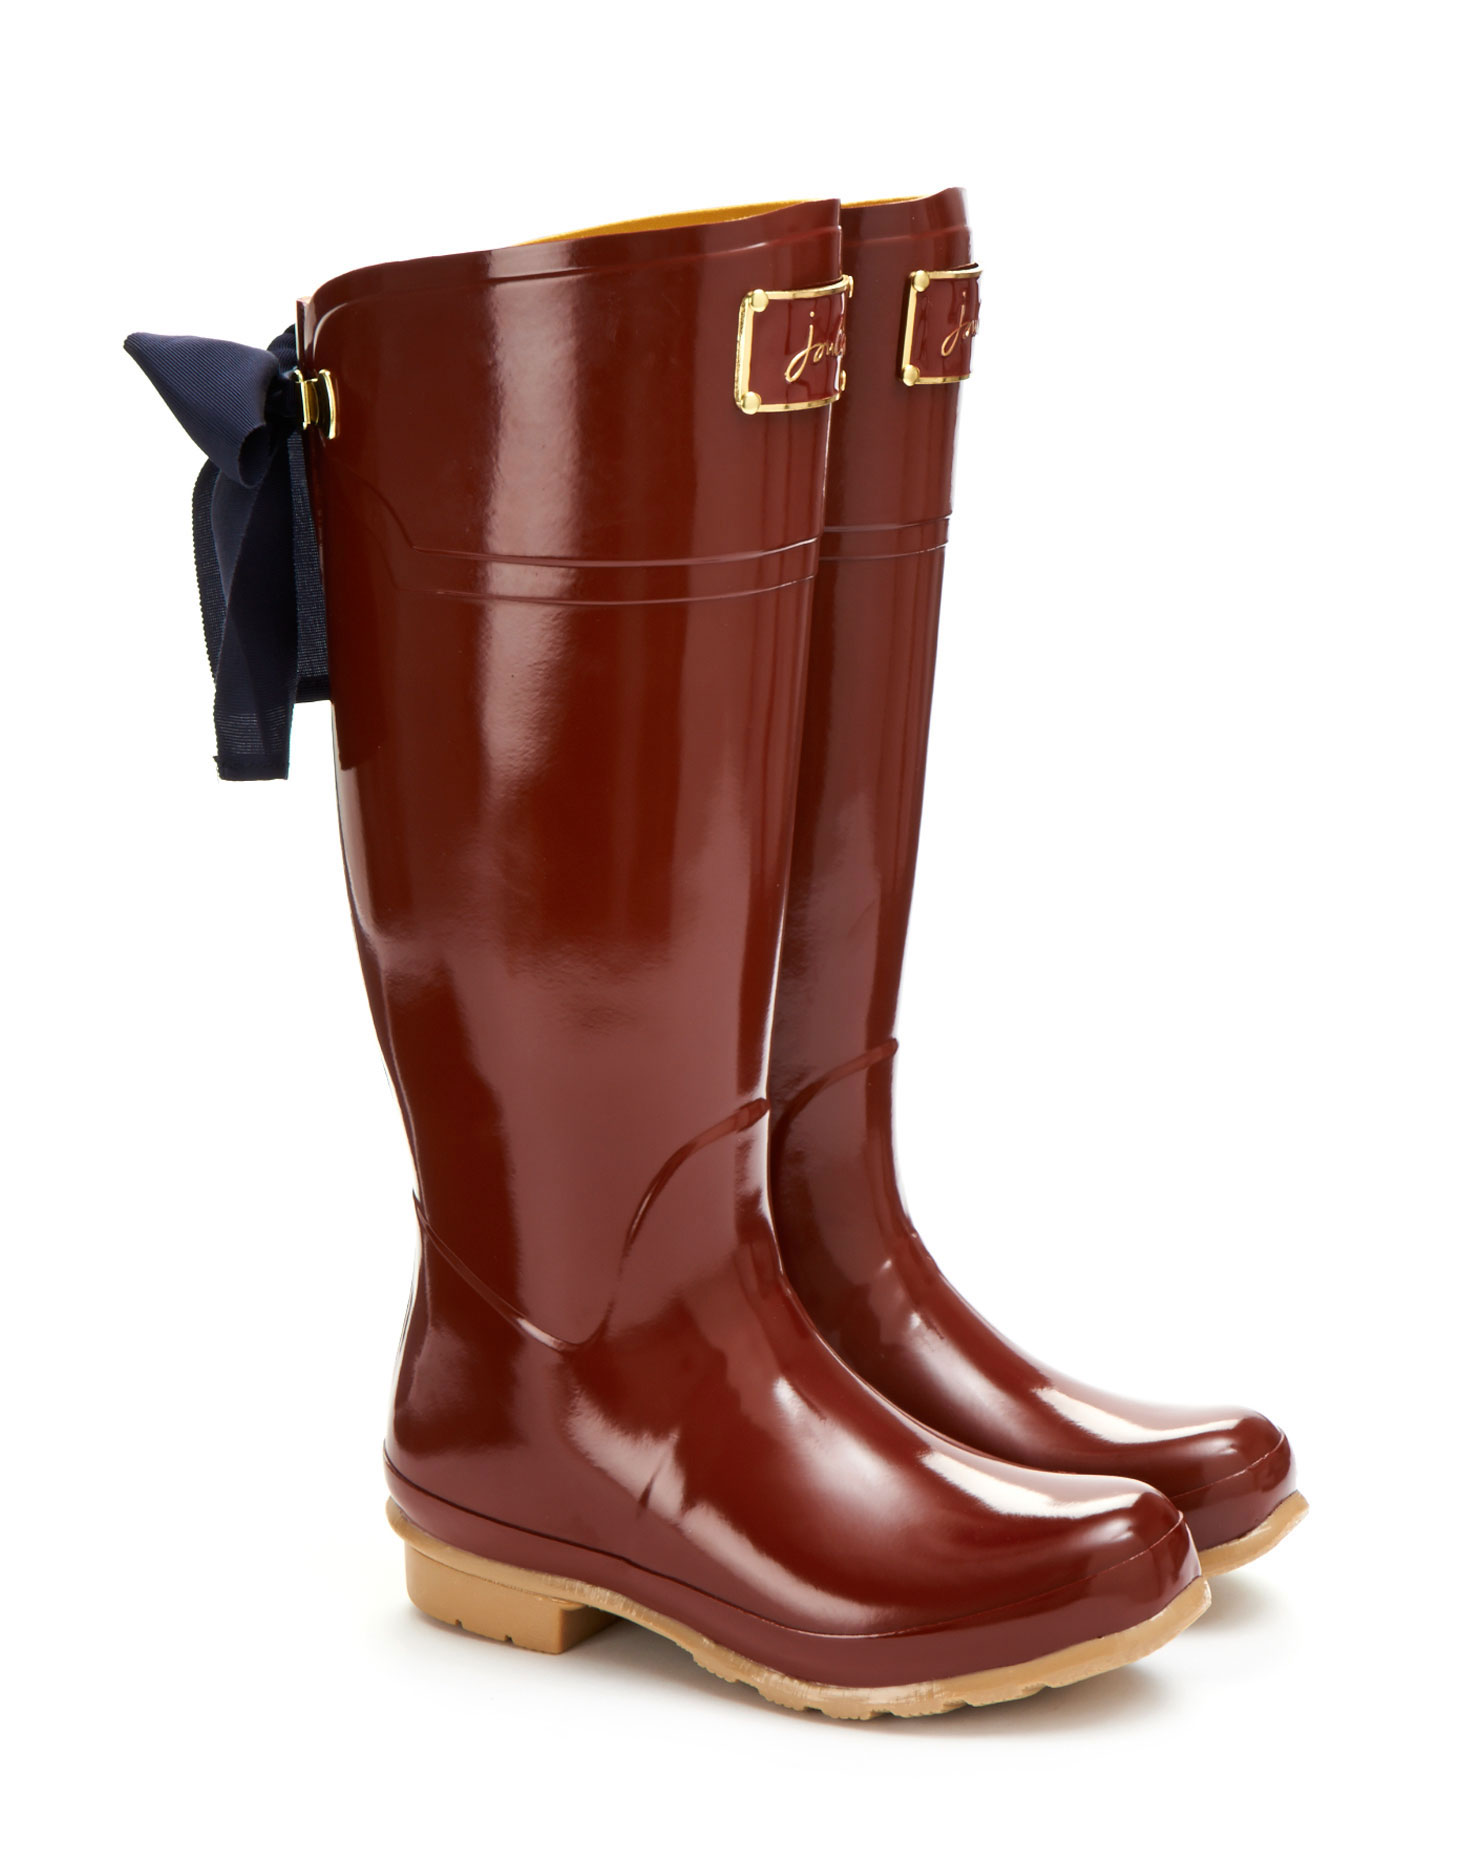 Womens Red Rain Boots YFY2gGgb